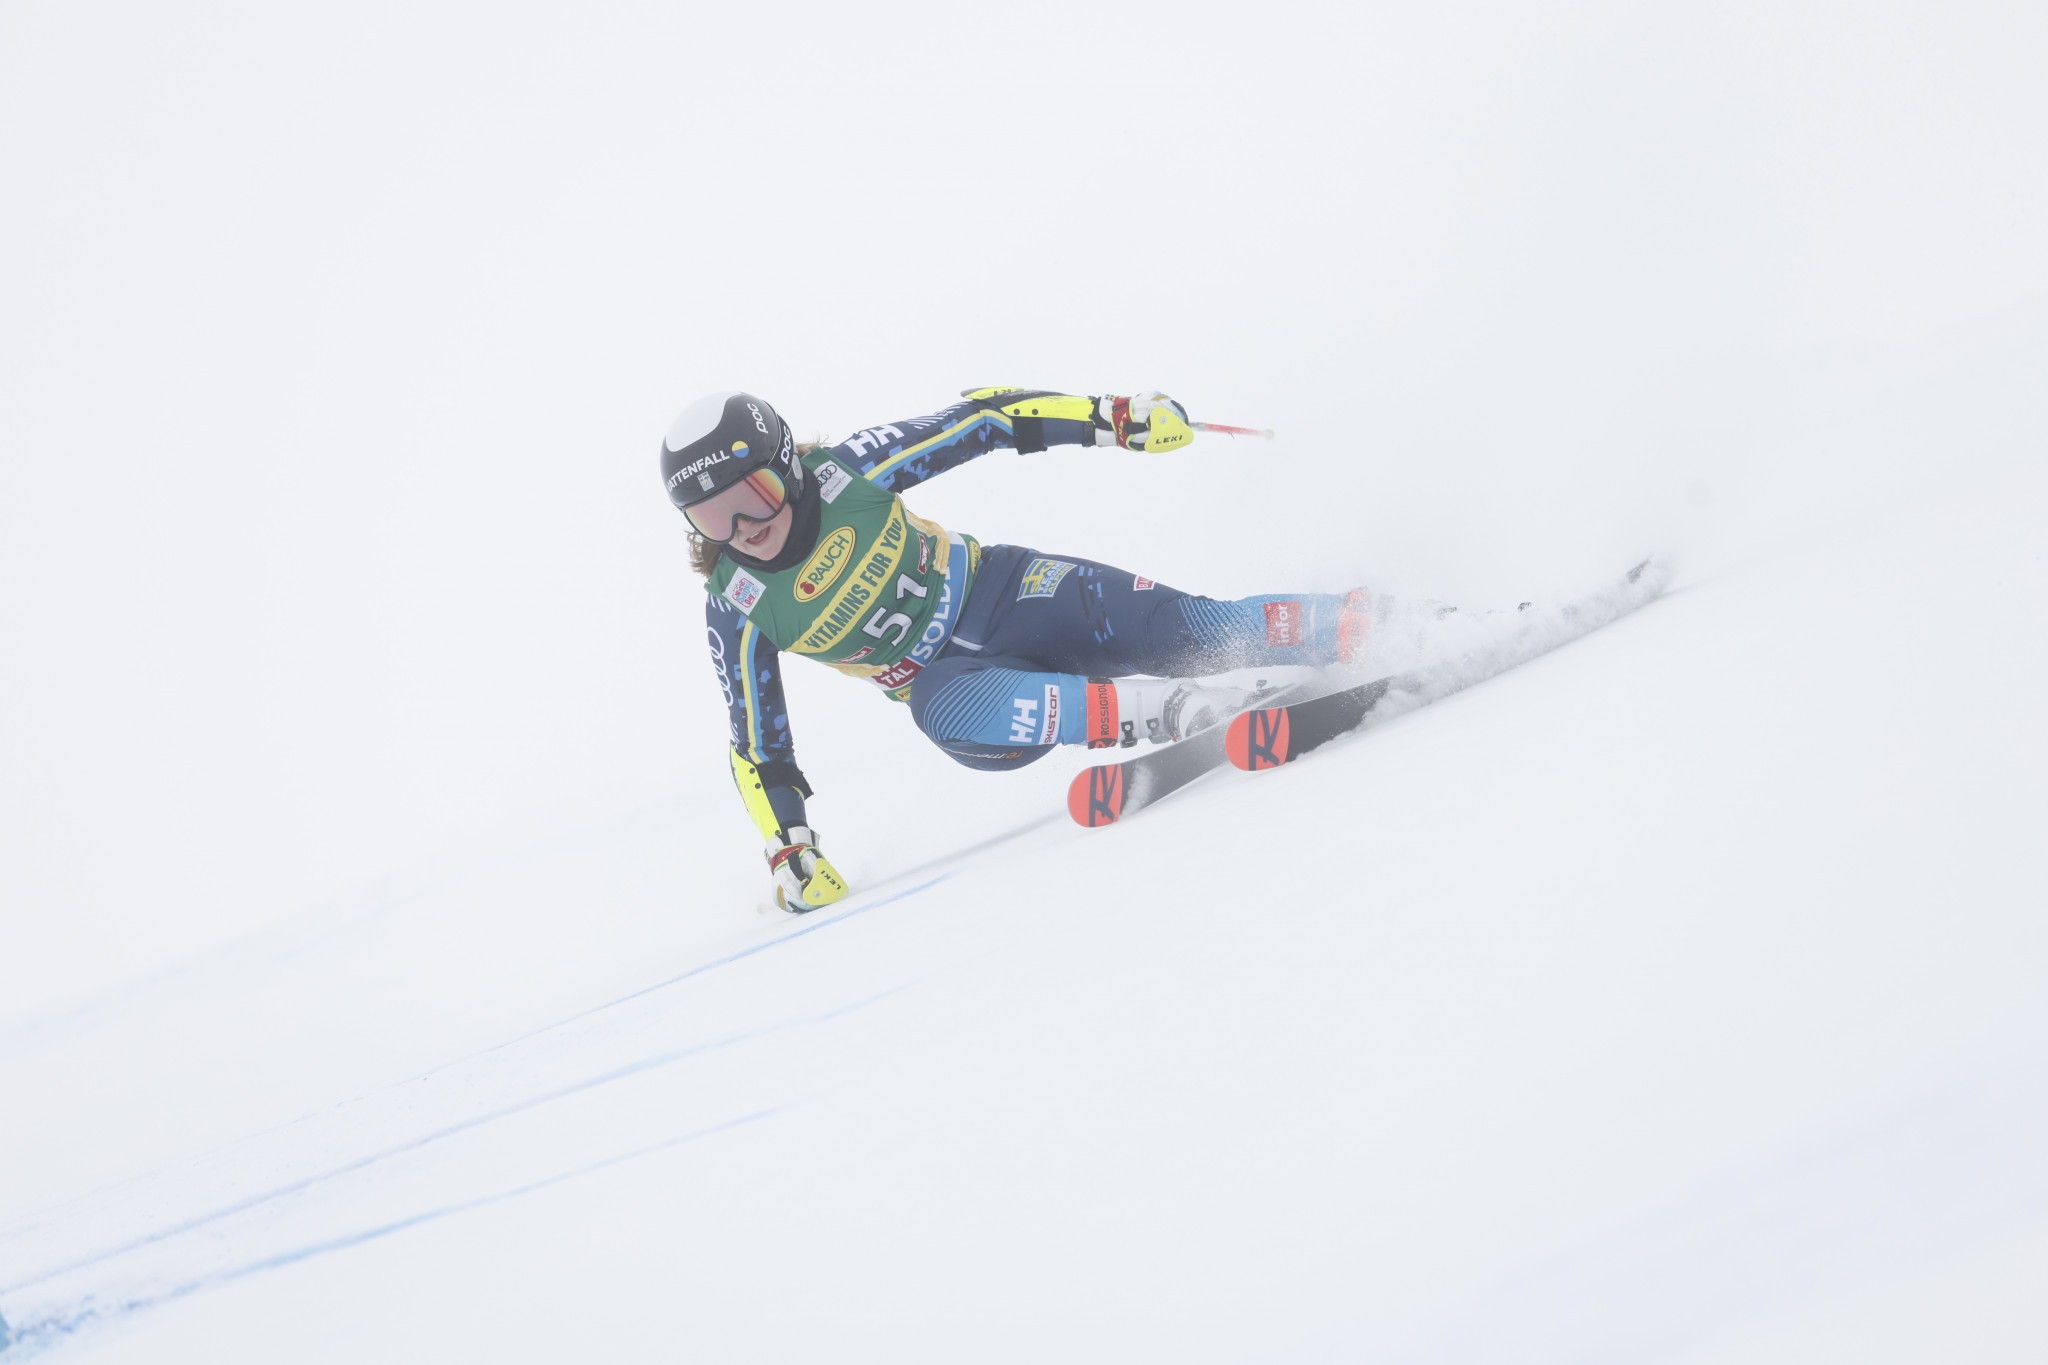 Hanna Aronsson Elfman earned Sweden's first medal of any colour at this year's Alpine Junior World Ski Championships ©Getty Images